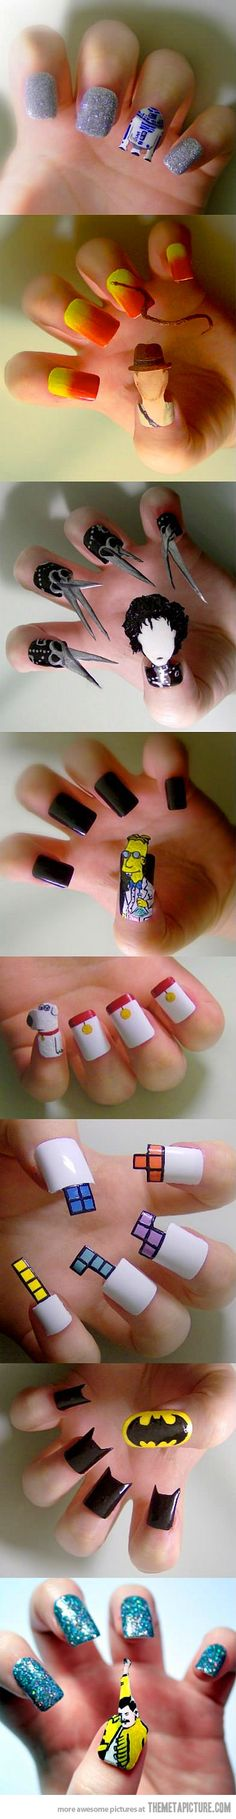 These nails are so cool and unique especially the designs on the nail and some nails actually take the shape of the design! Awesome nail art!